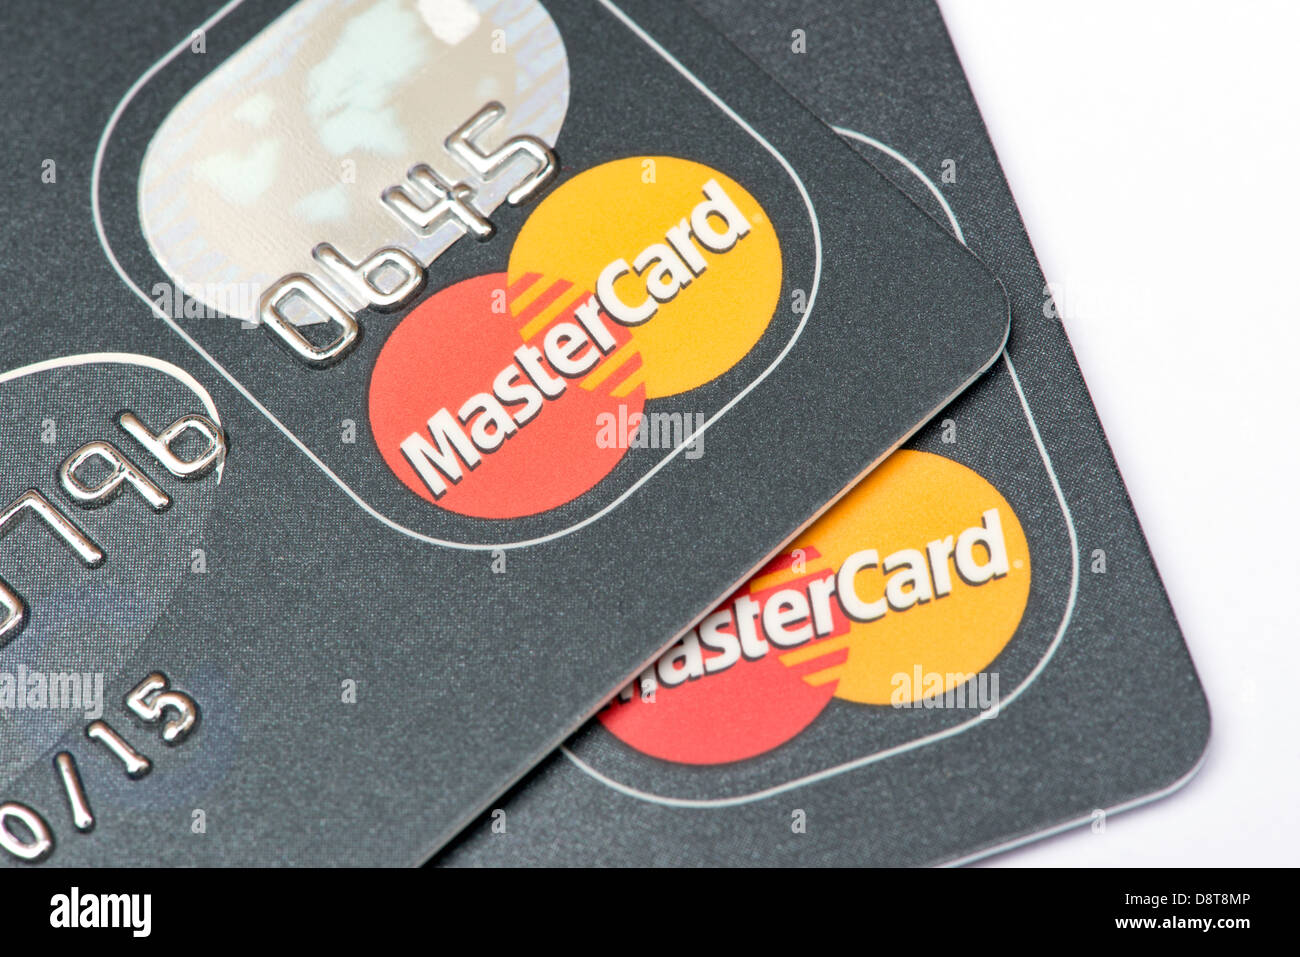 Two Mastercard payment cards - Stock Image